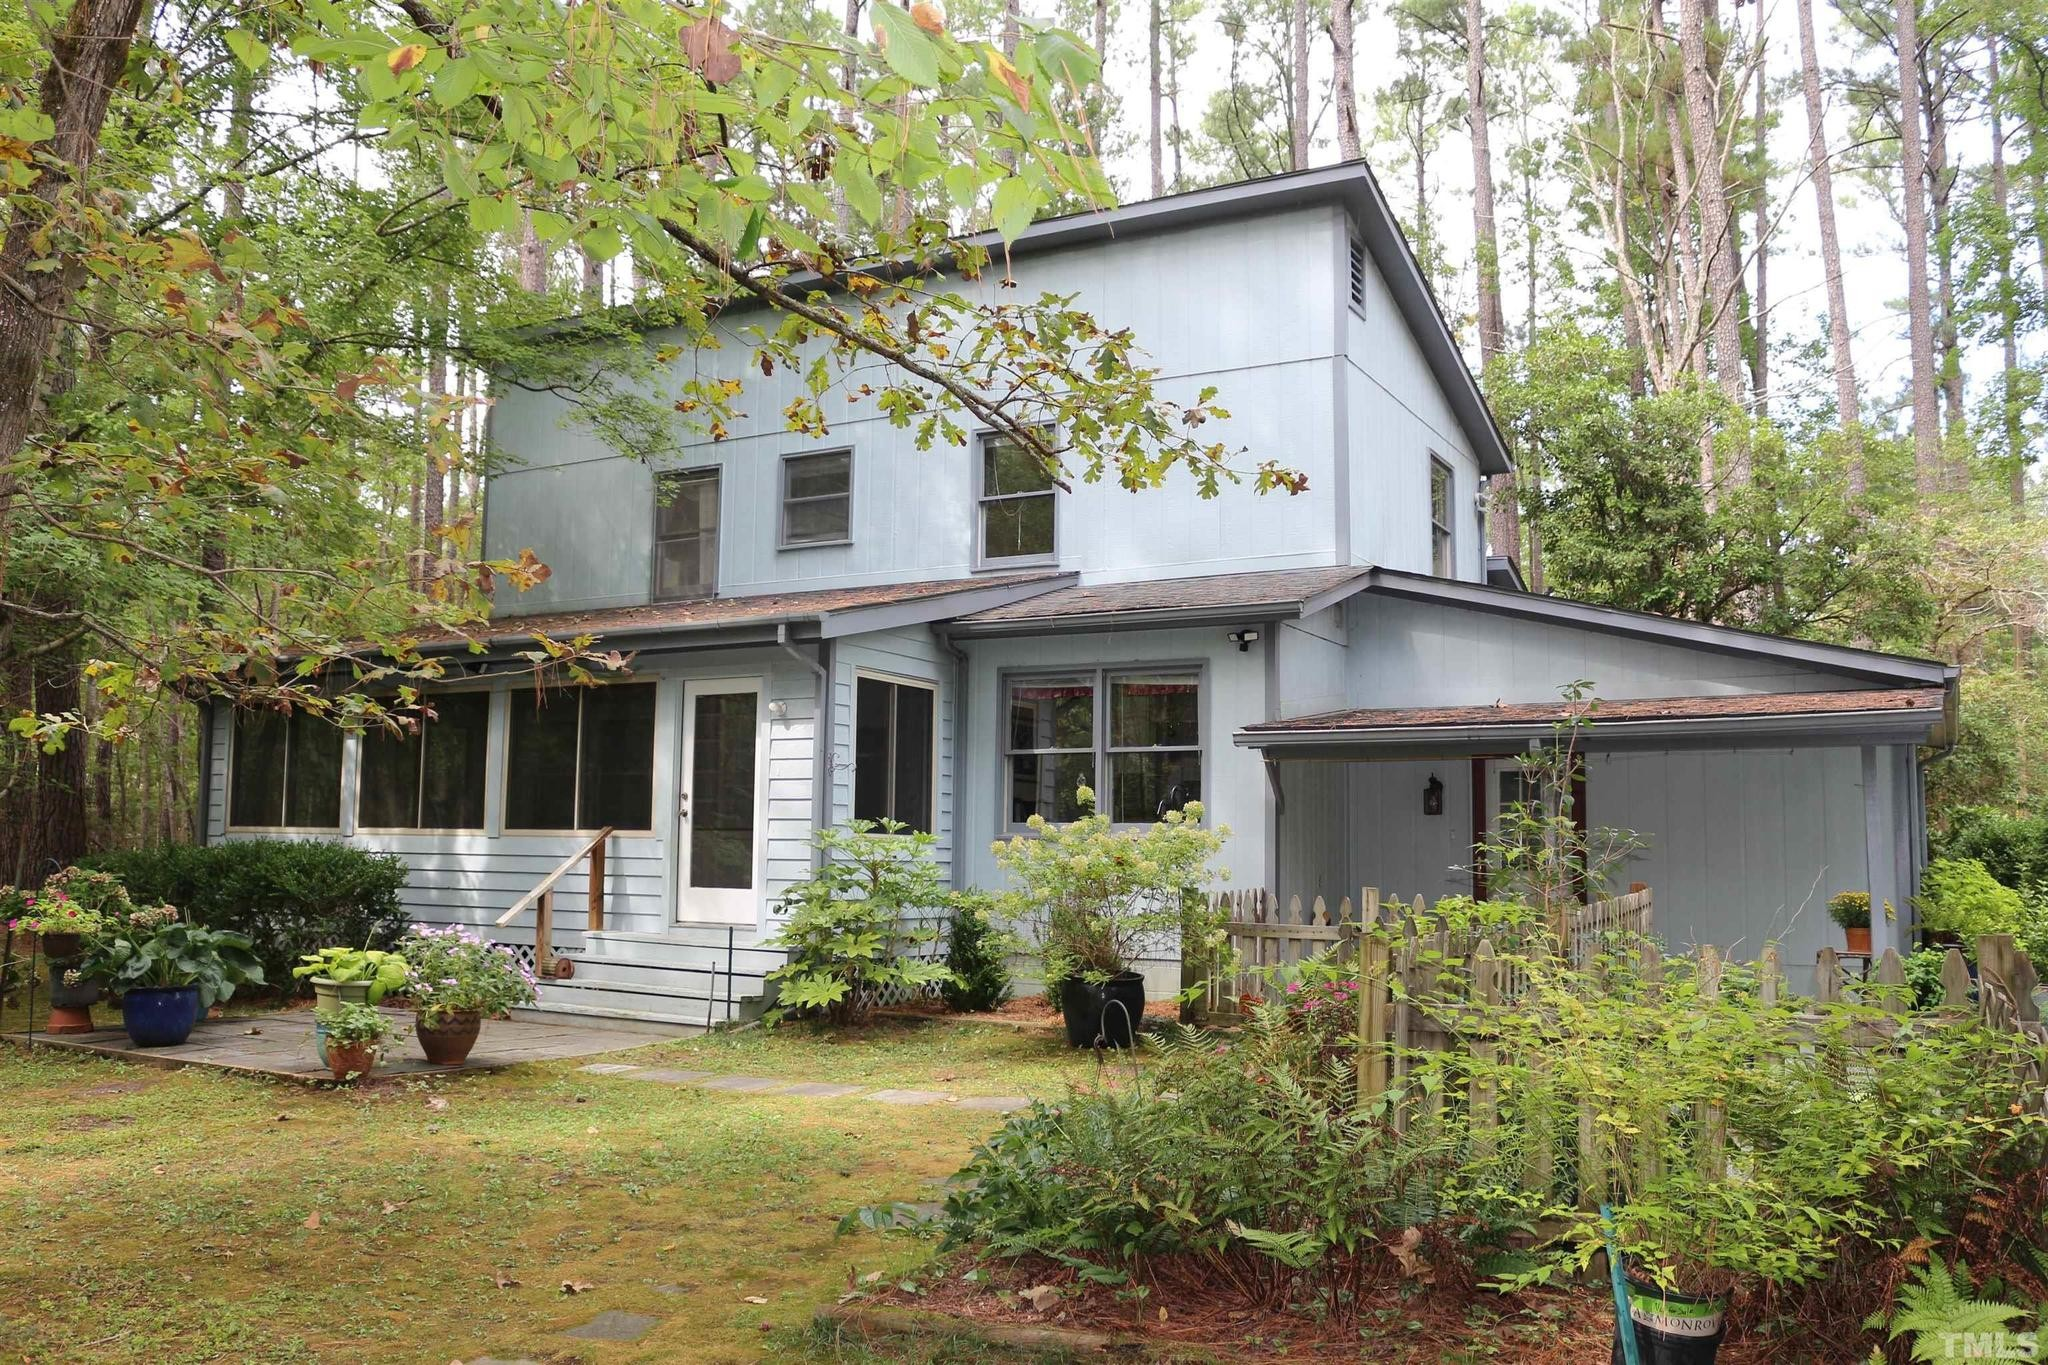 1-Story House In Pittsboro